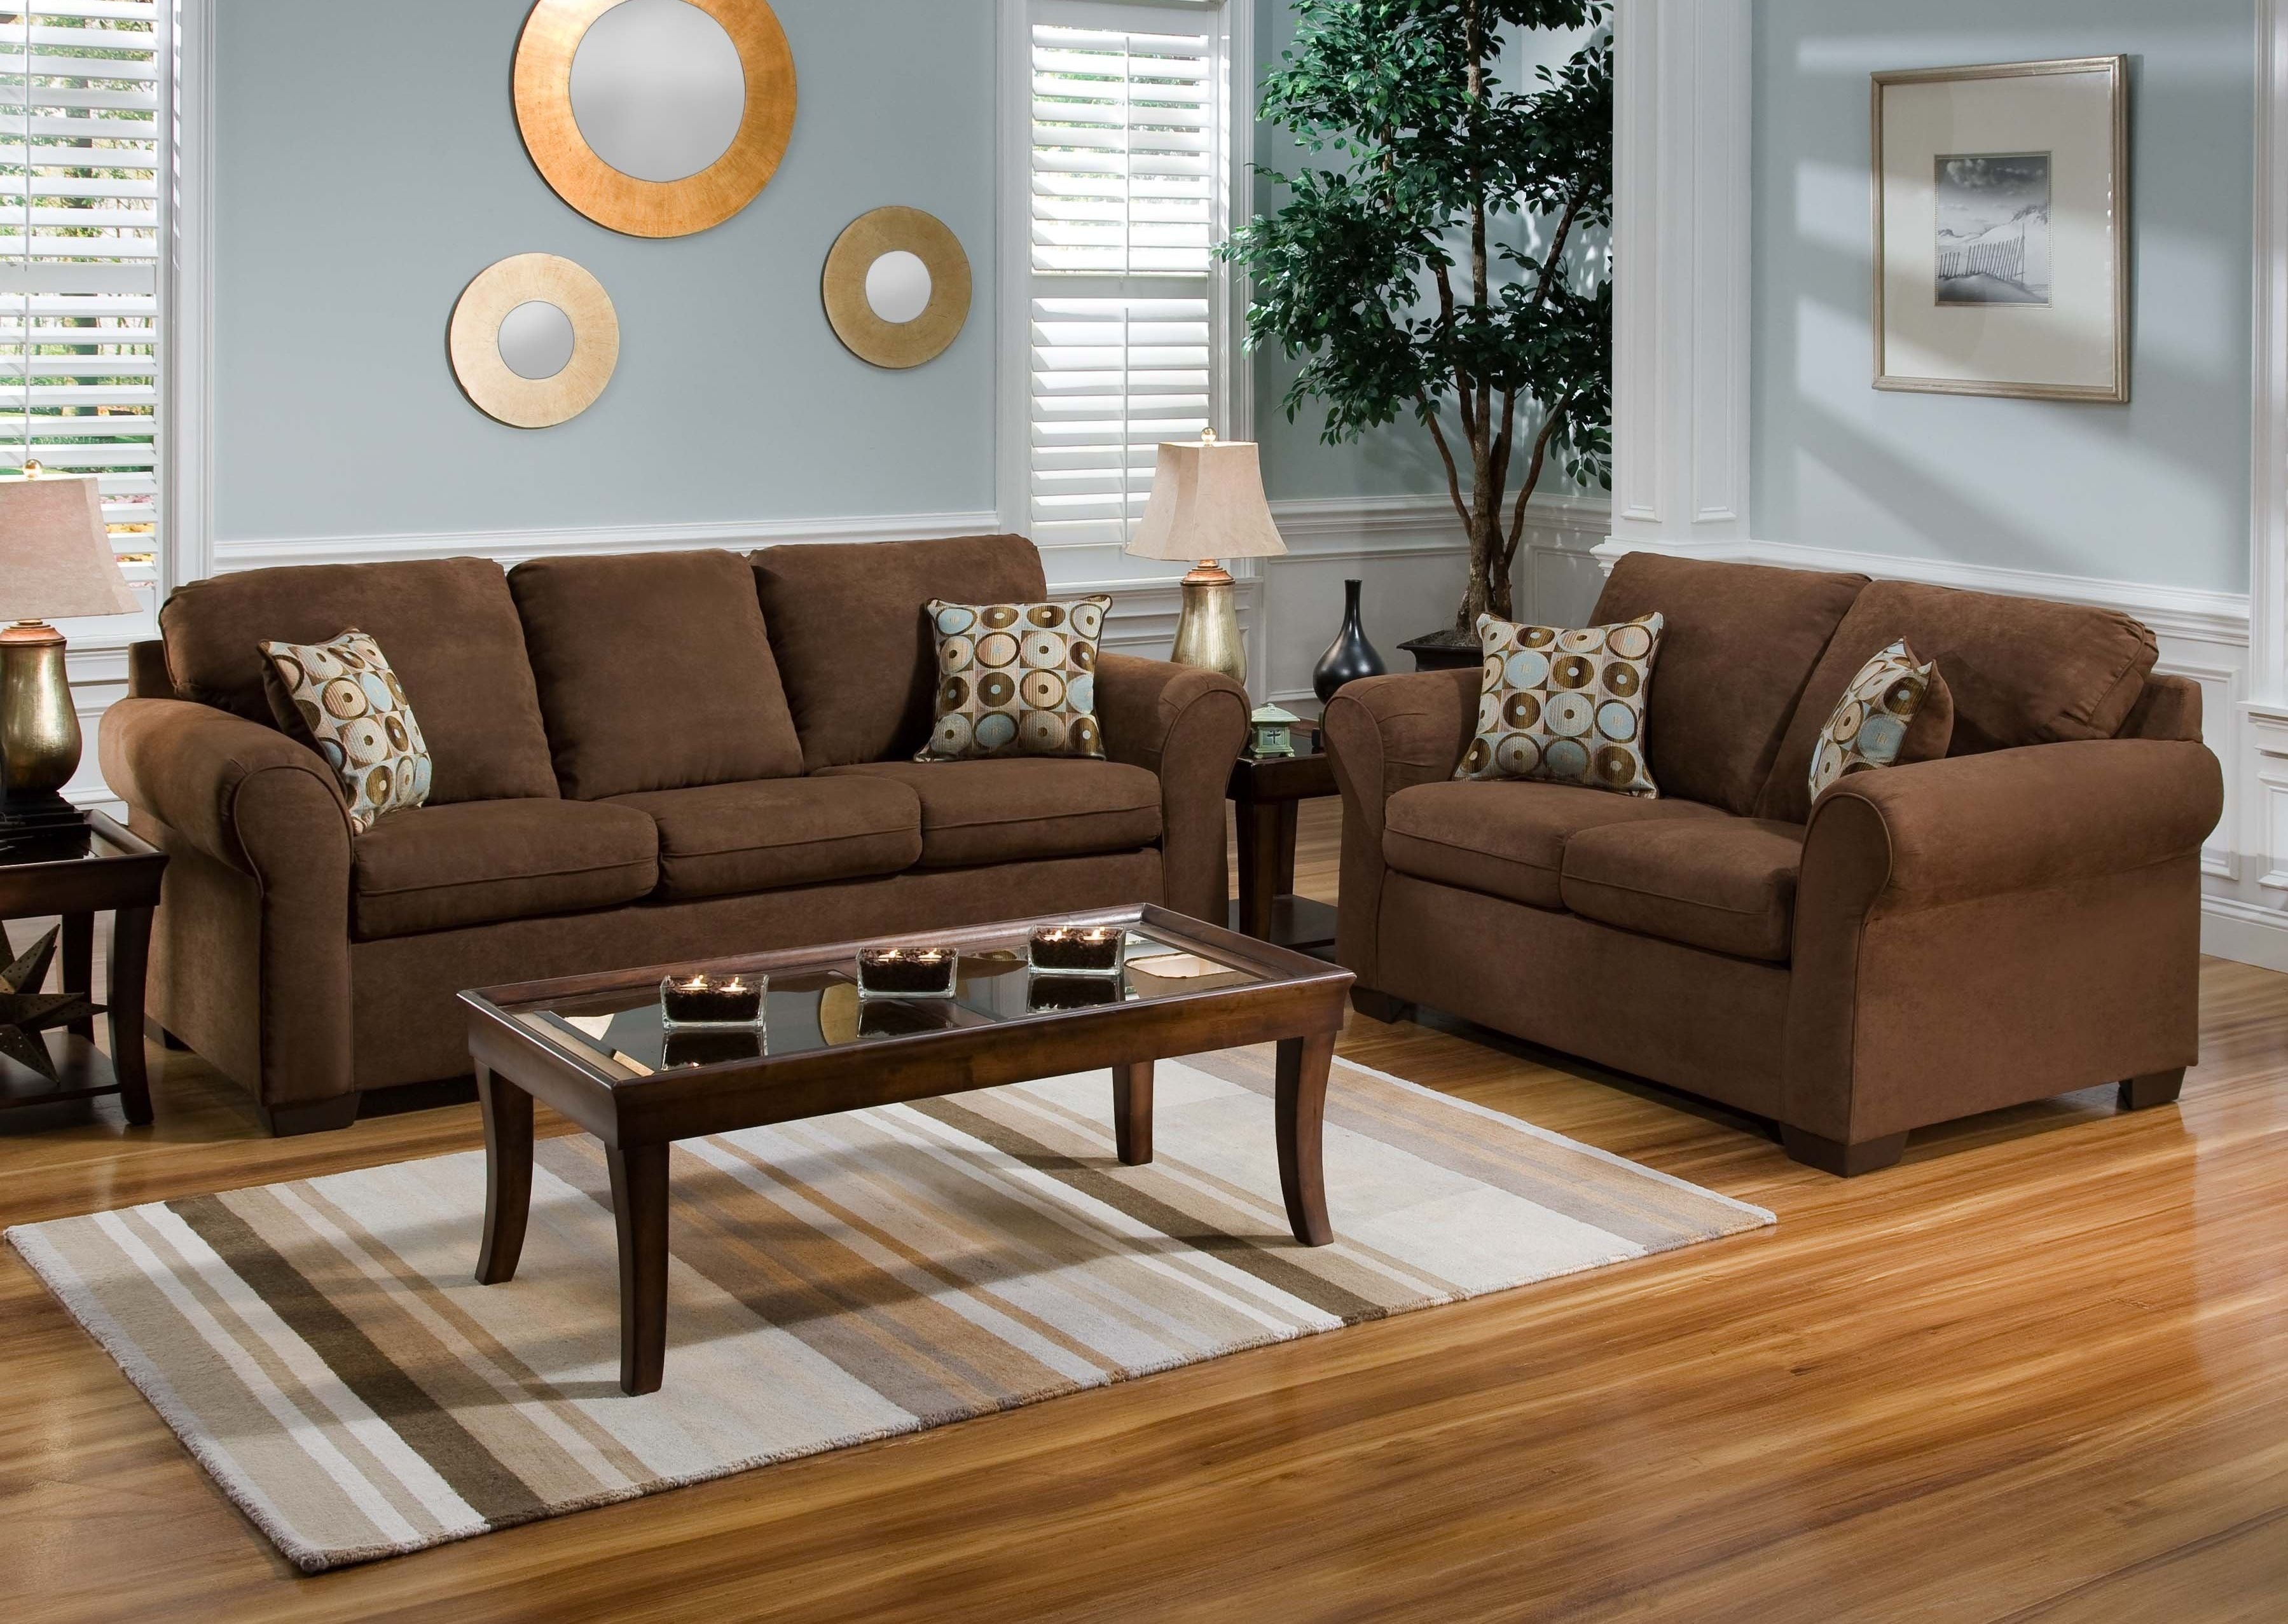 10 Gorgeous Living Room Paint Ideas With Brown Furniture wood flooring color to complement brown leather and oak furniture 2 2021